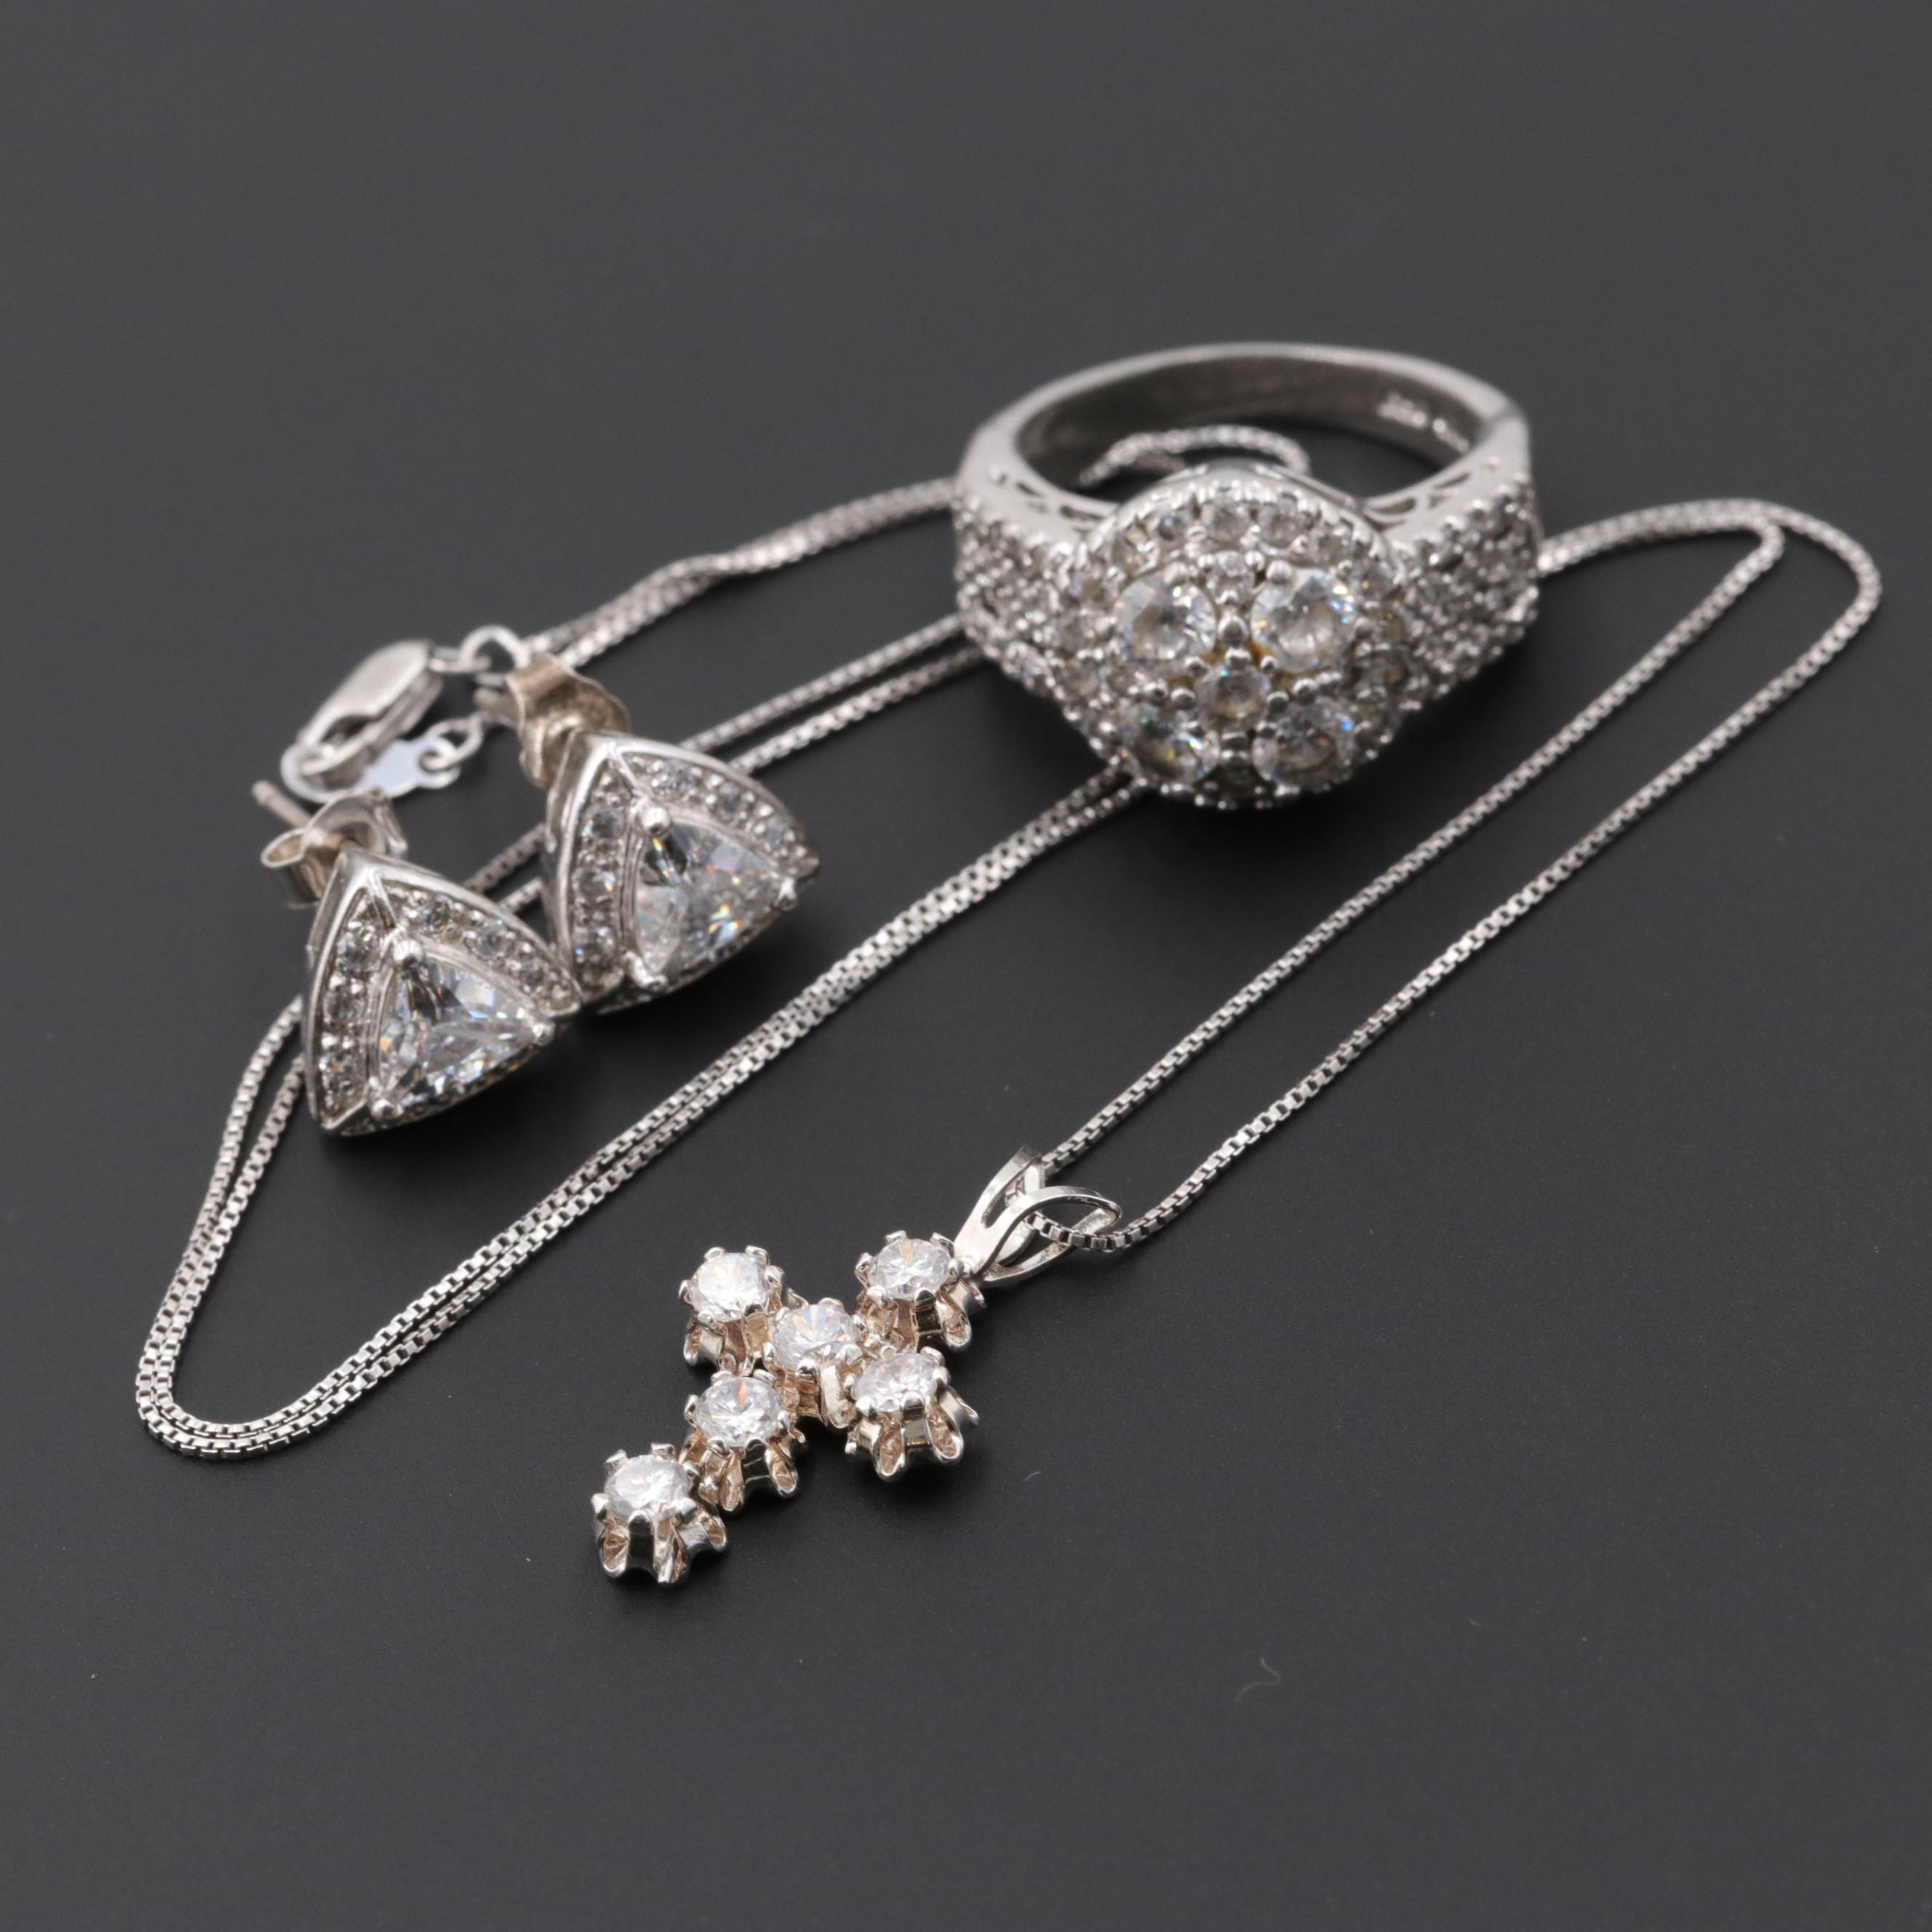 Sterling Silver Cubic Zirconia Necklace, Ring and Earrings